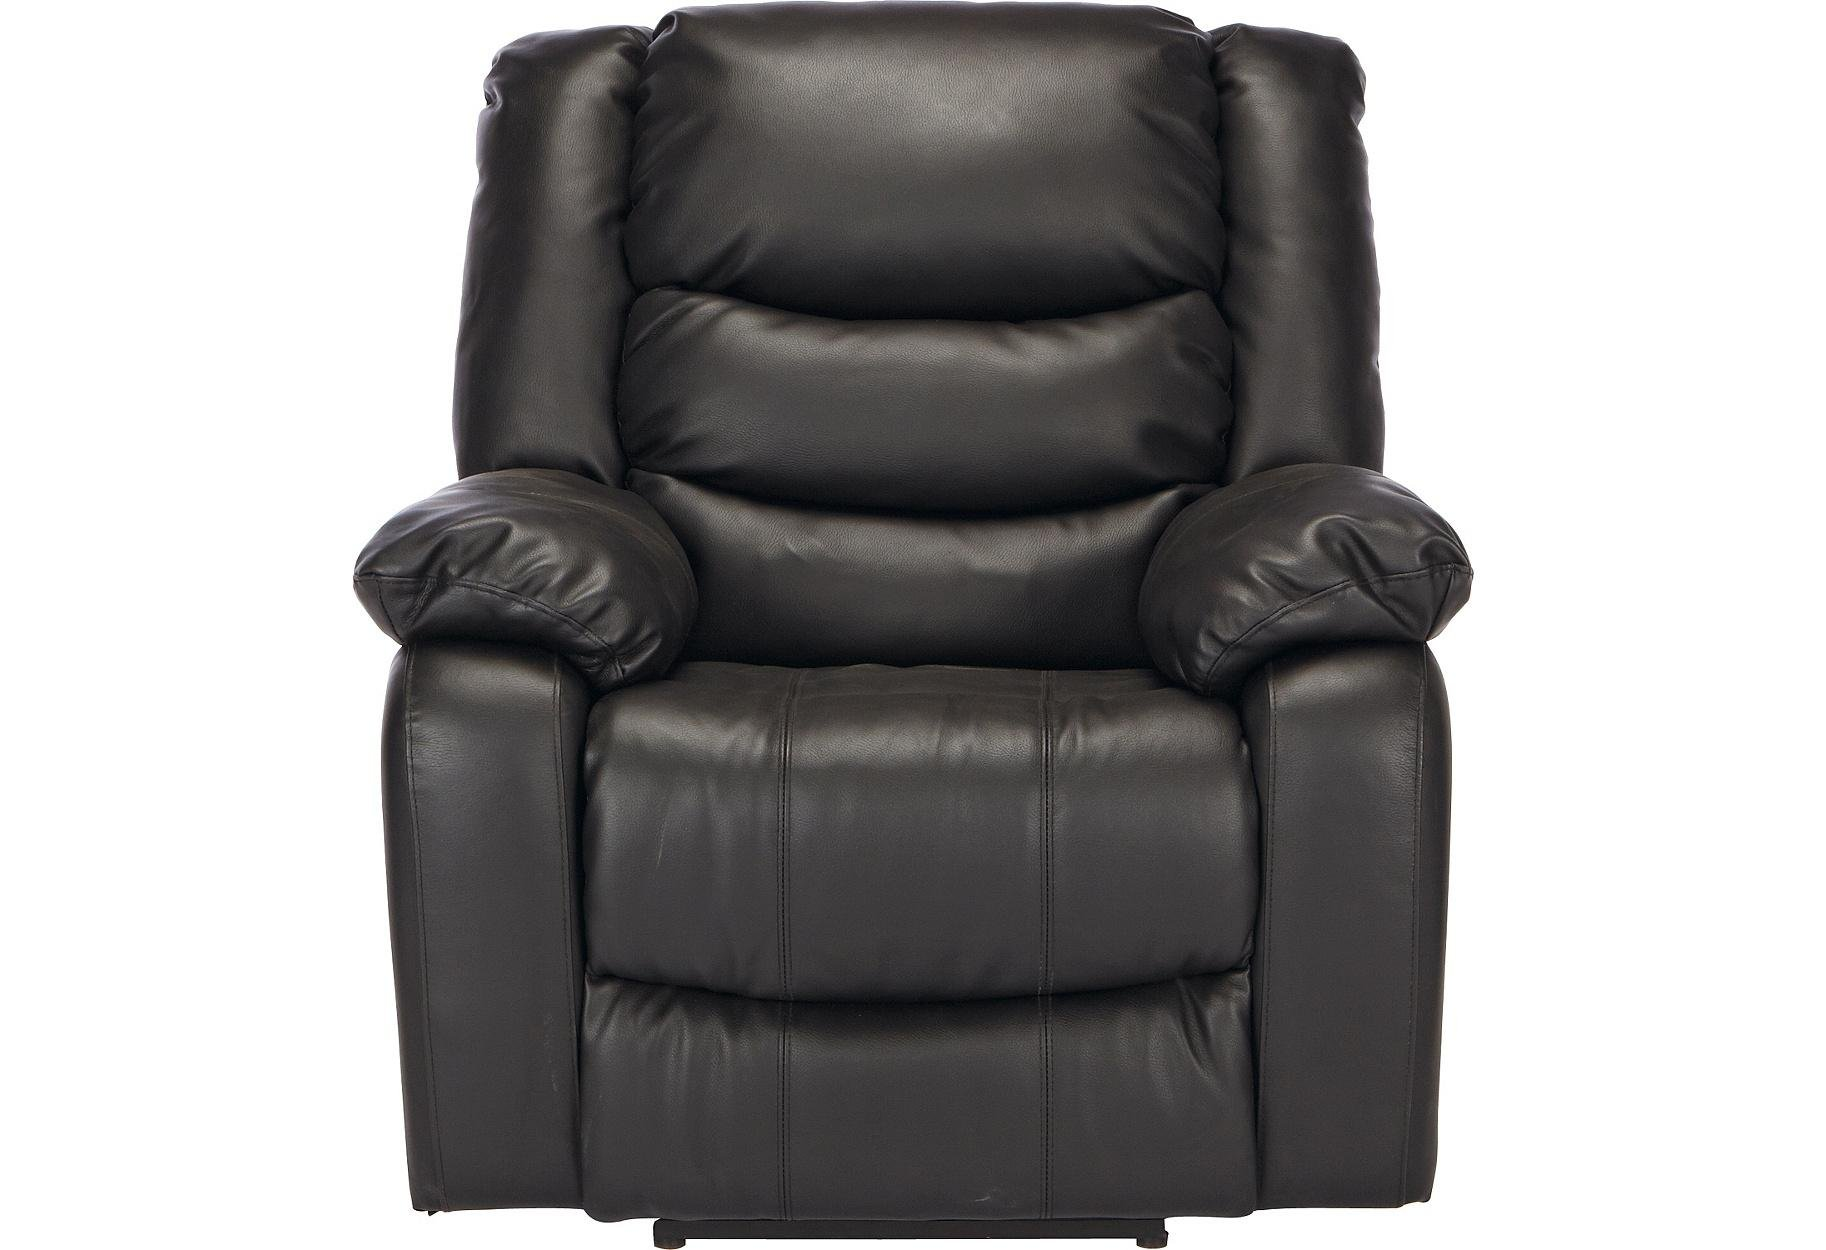 buy collection leather power massage recliner chair - black at